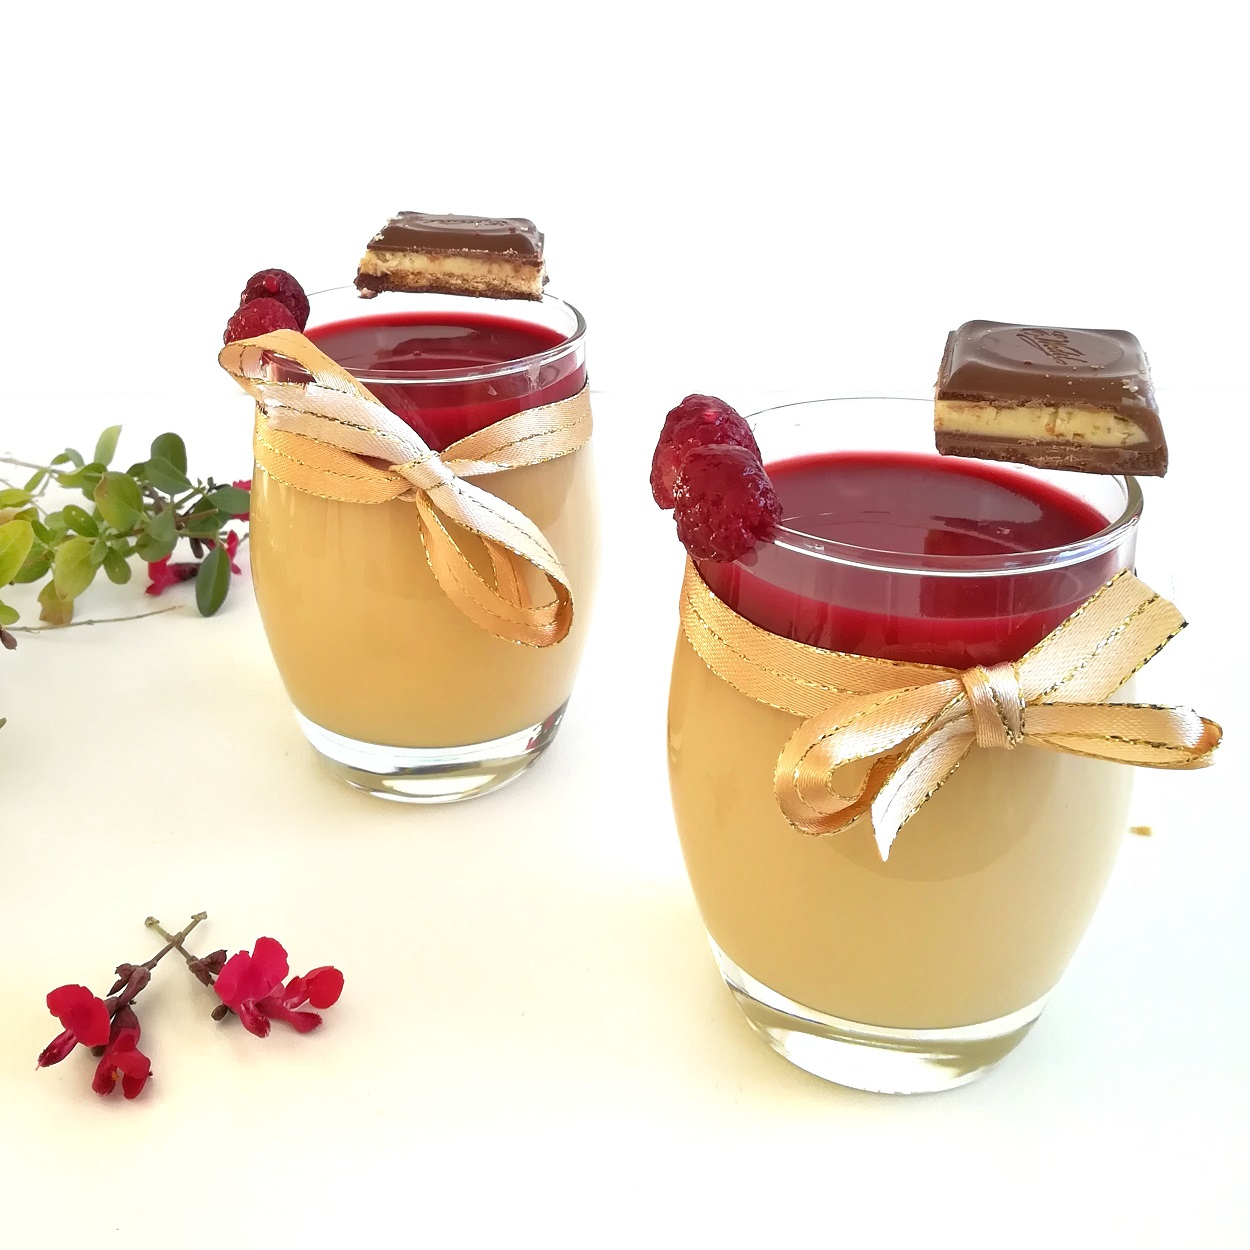 verrine panna cotta fruits rouges